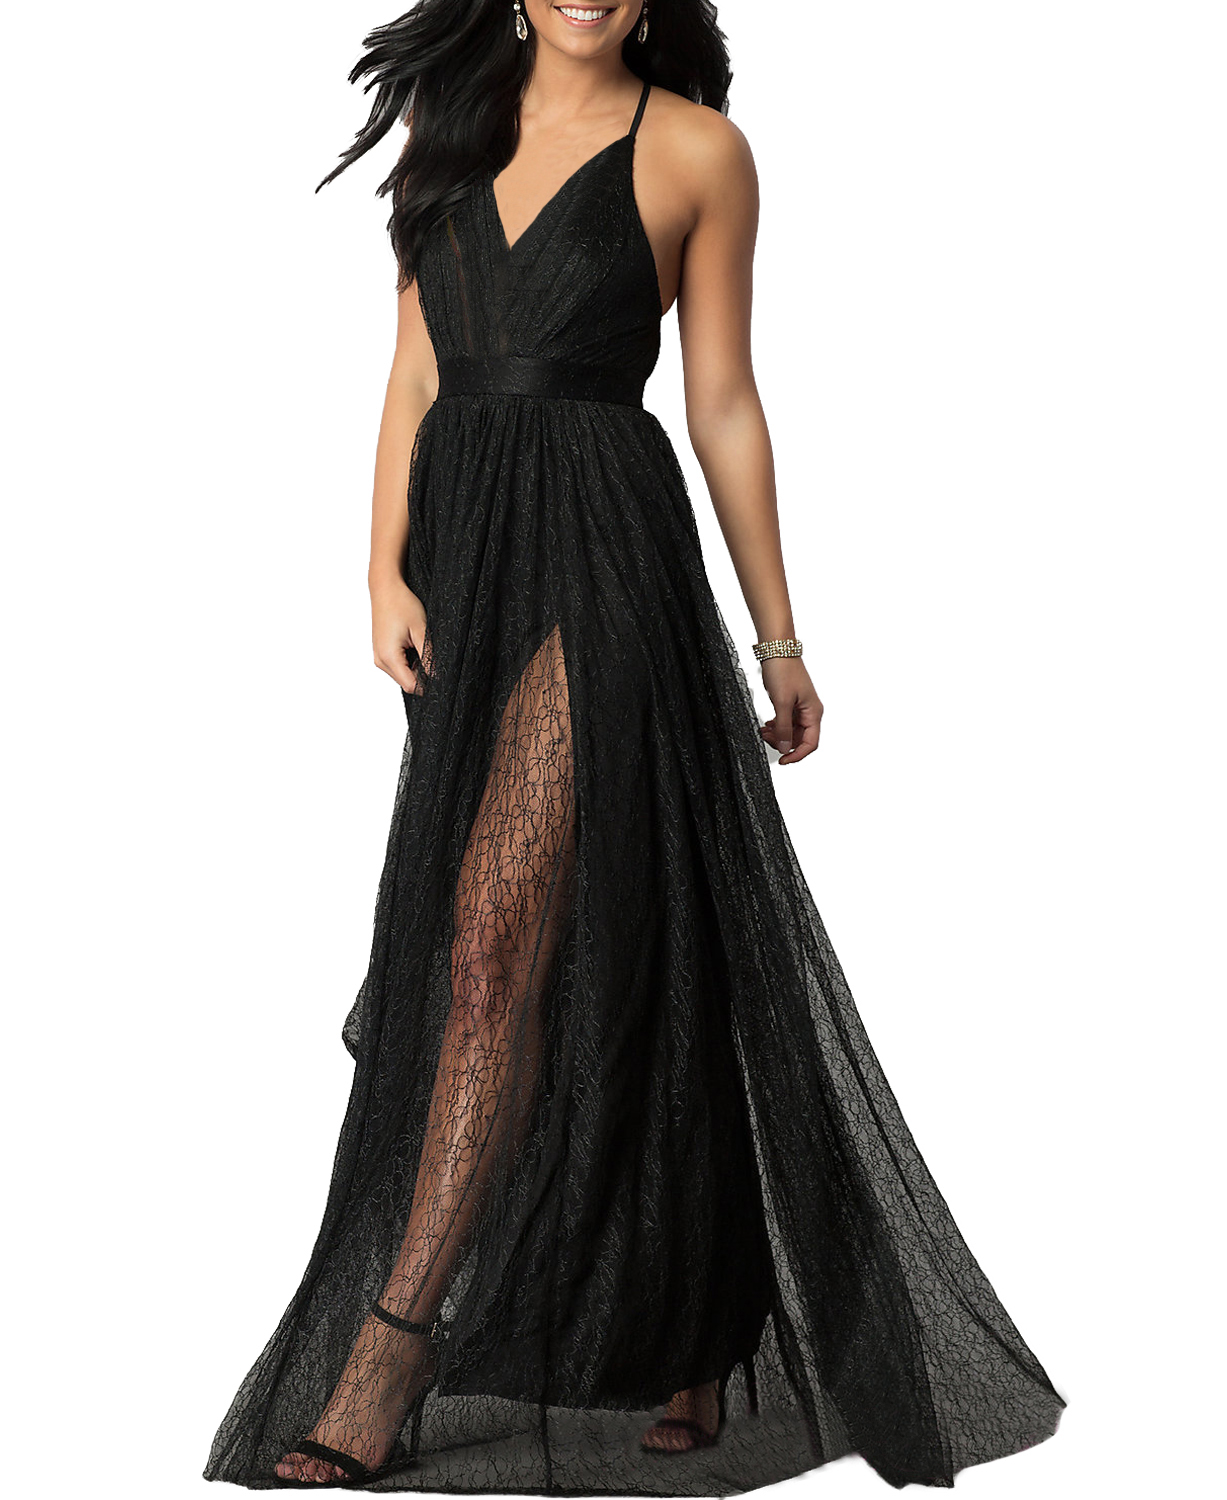 90a36d9ee6e X1 Sexy A Line Long Lace Backless Simple Black Evening Dress